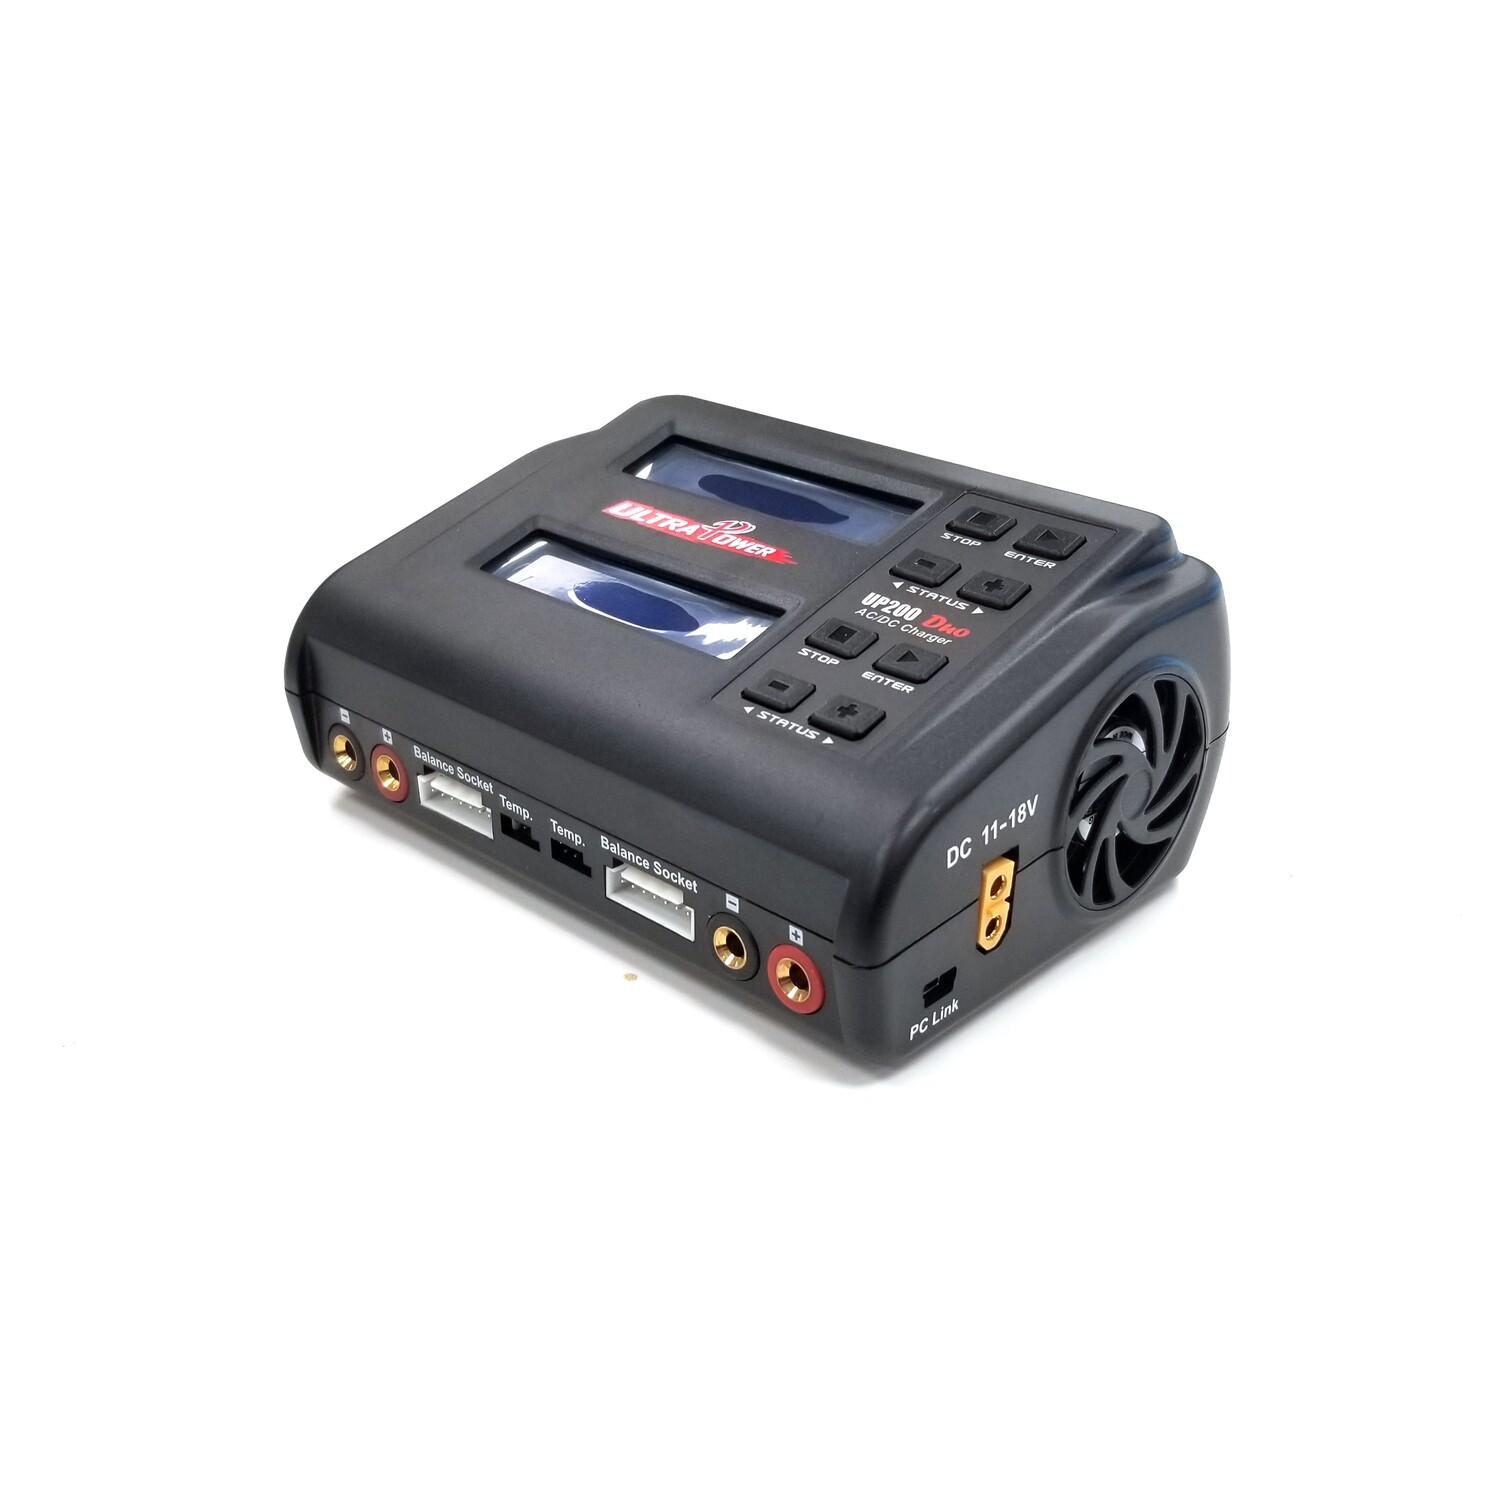 Ultra Power UP200 DUO 200W Dual Port Multi-Chemistry AC/DC Charger UPTUP200DUO